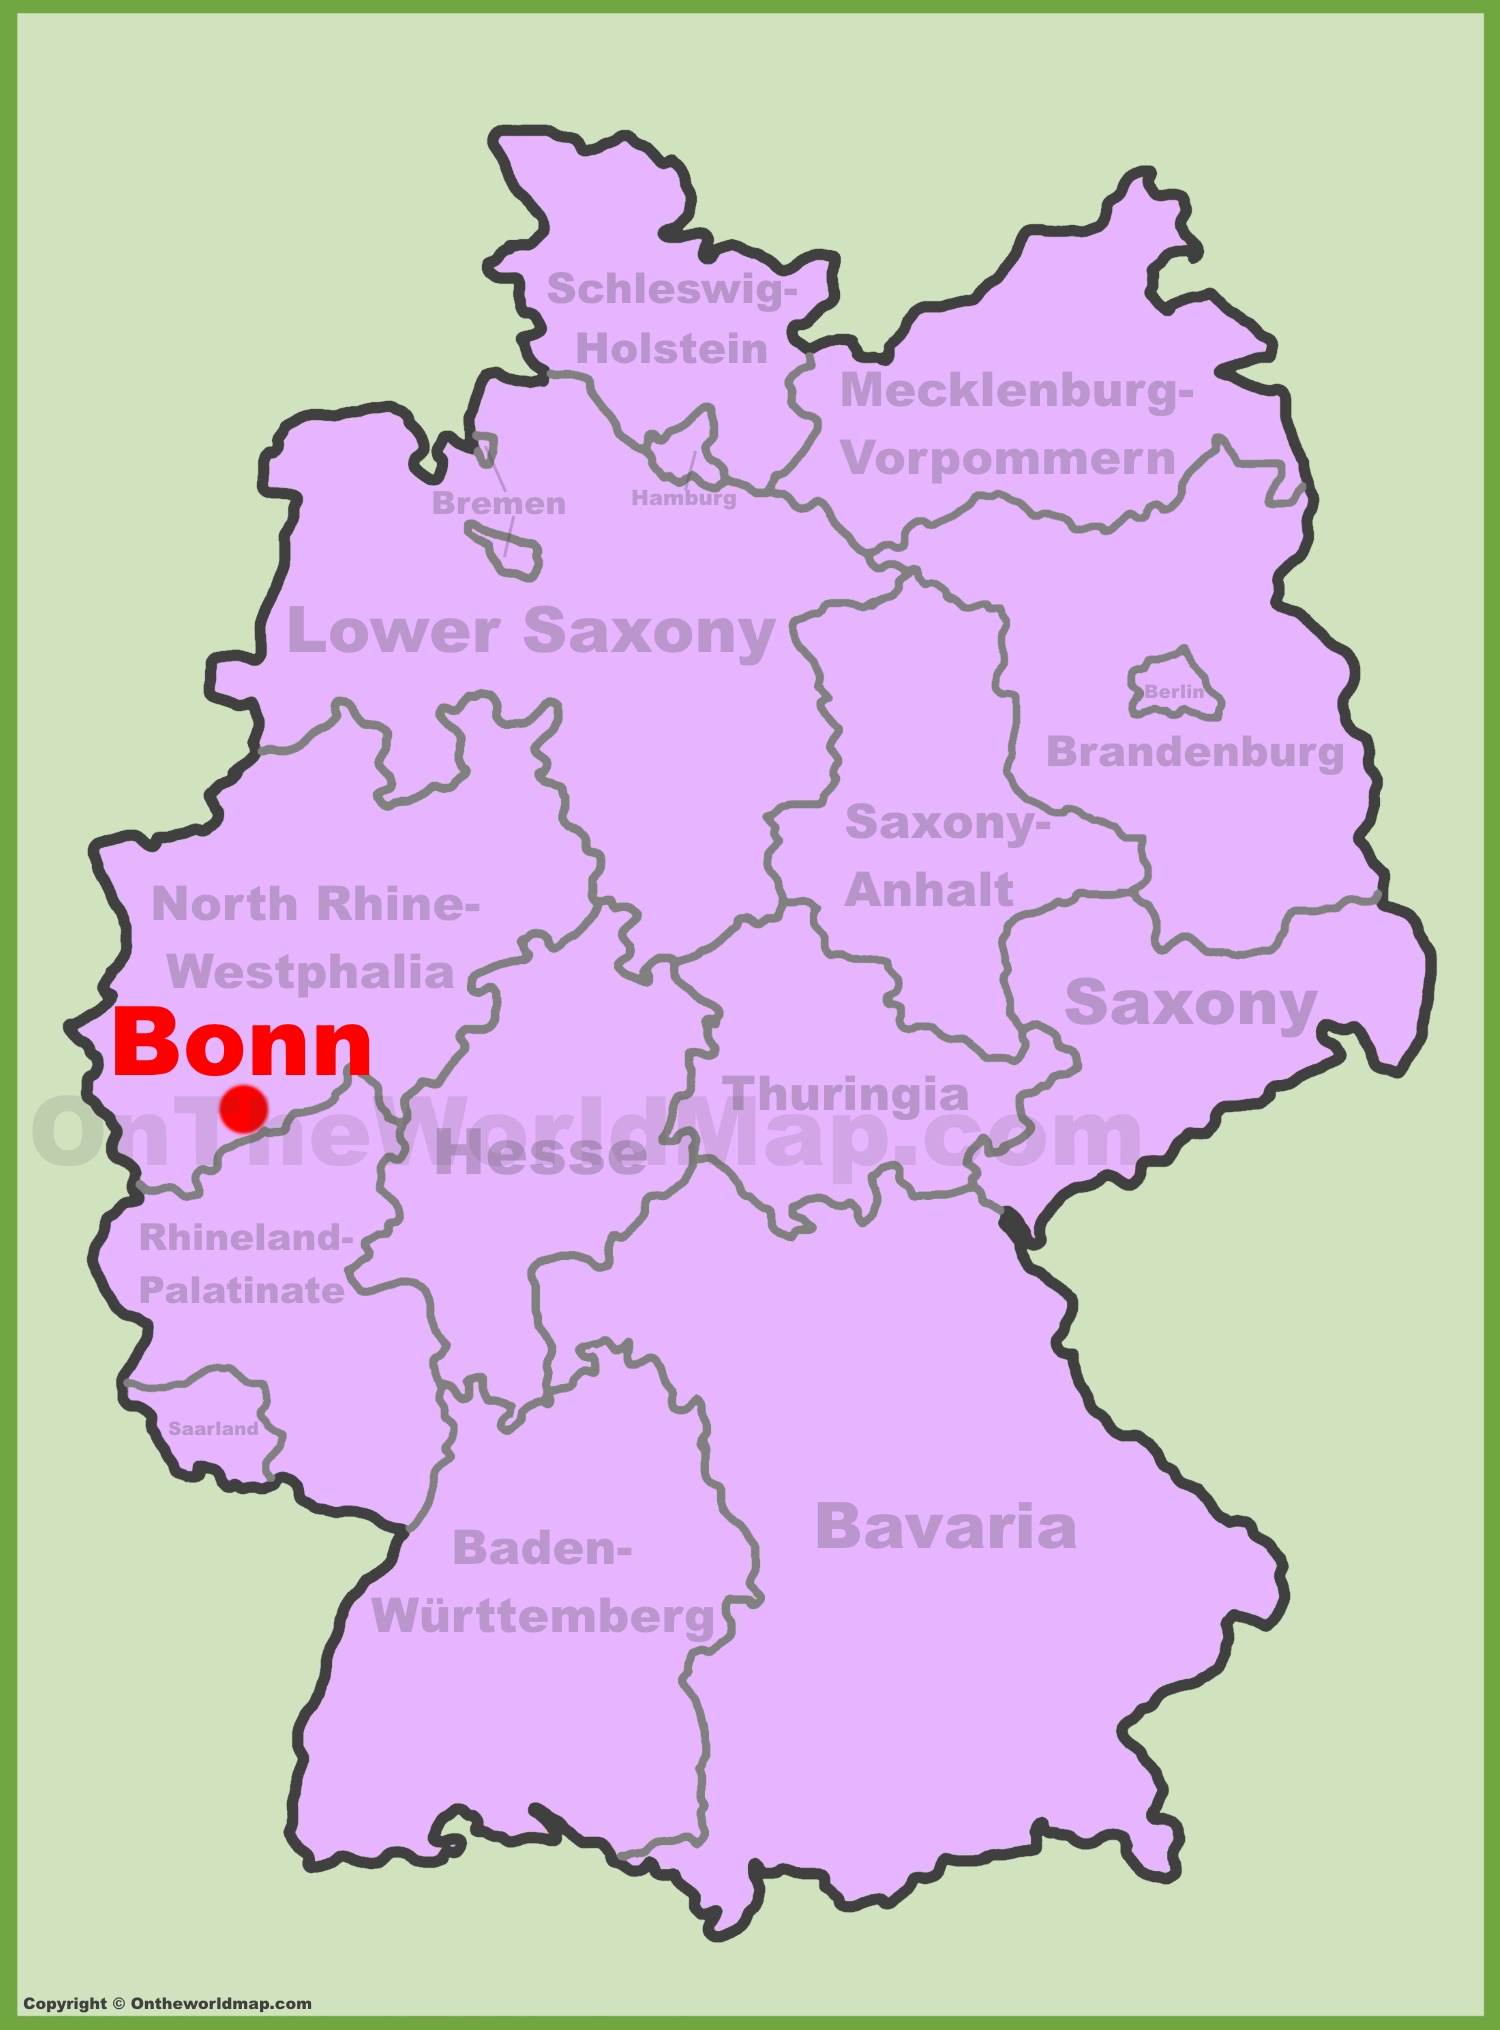 Bonn location on the Germany map